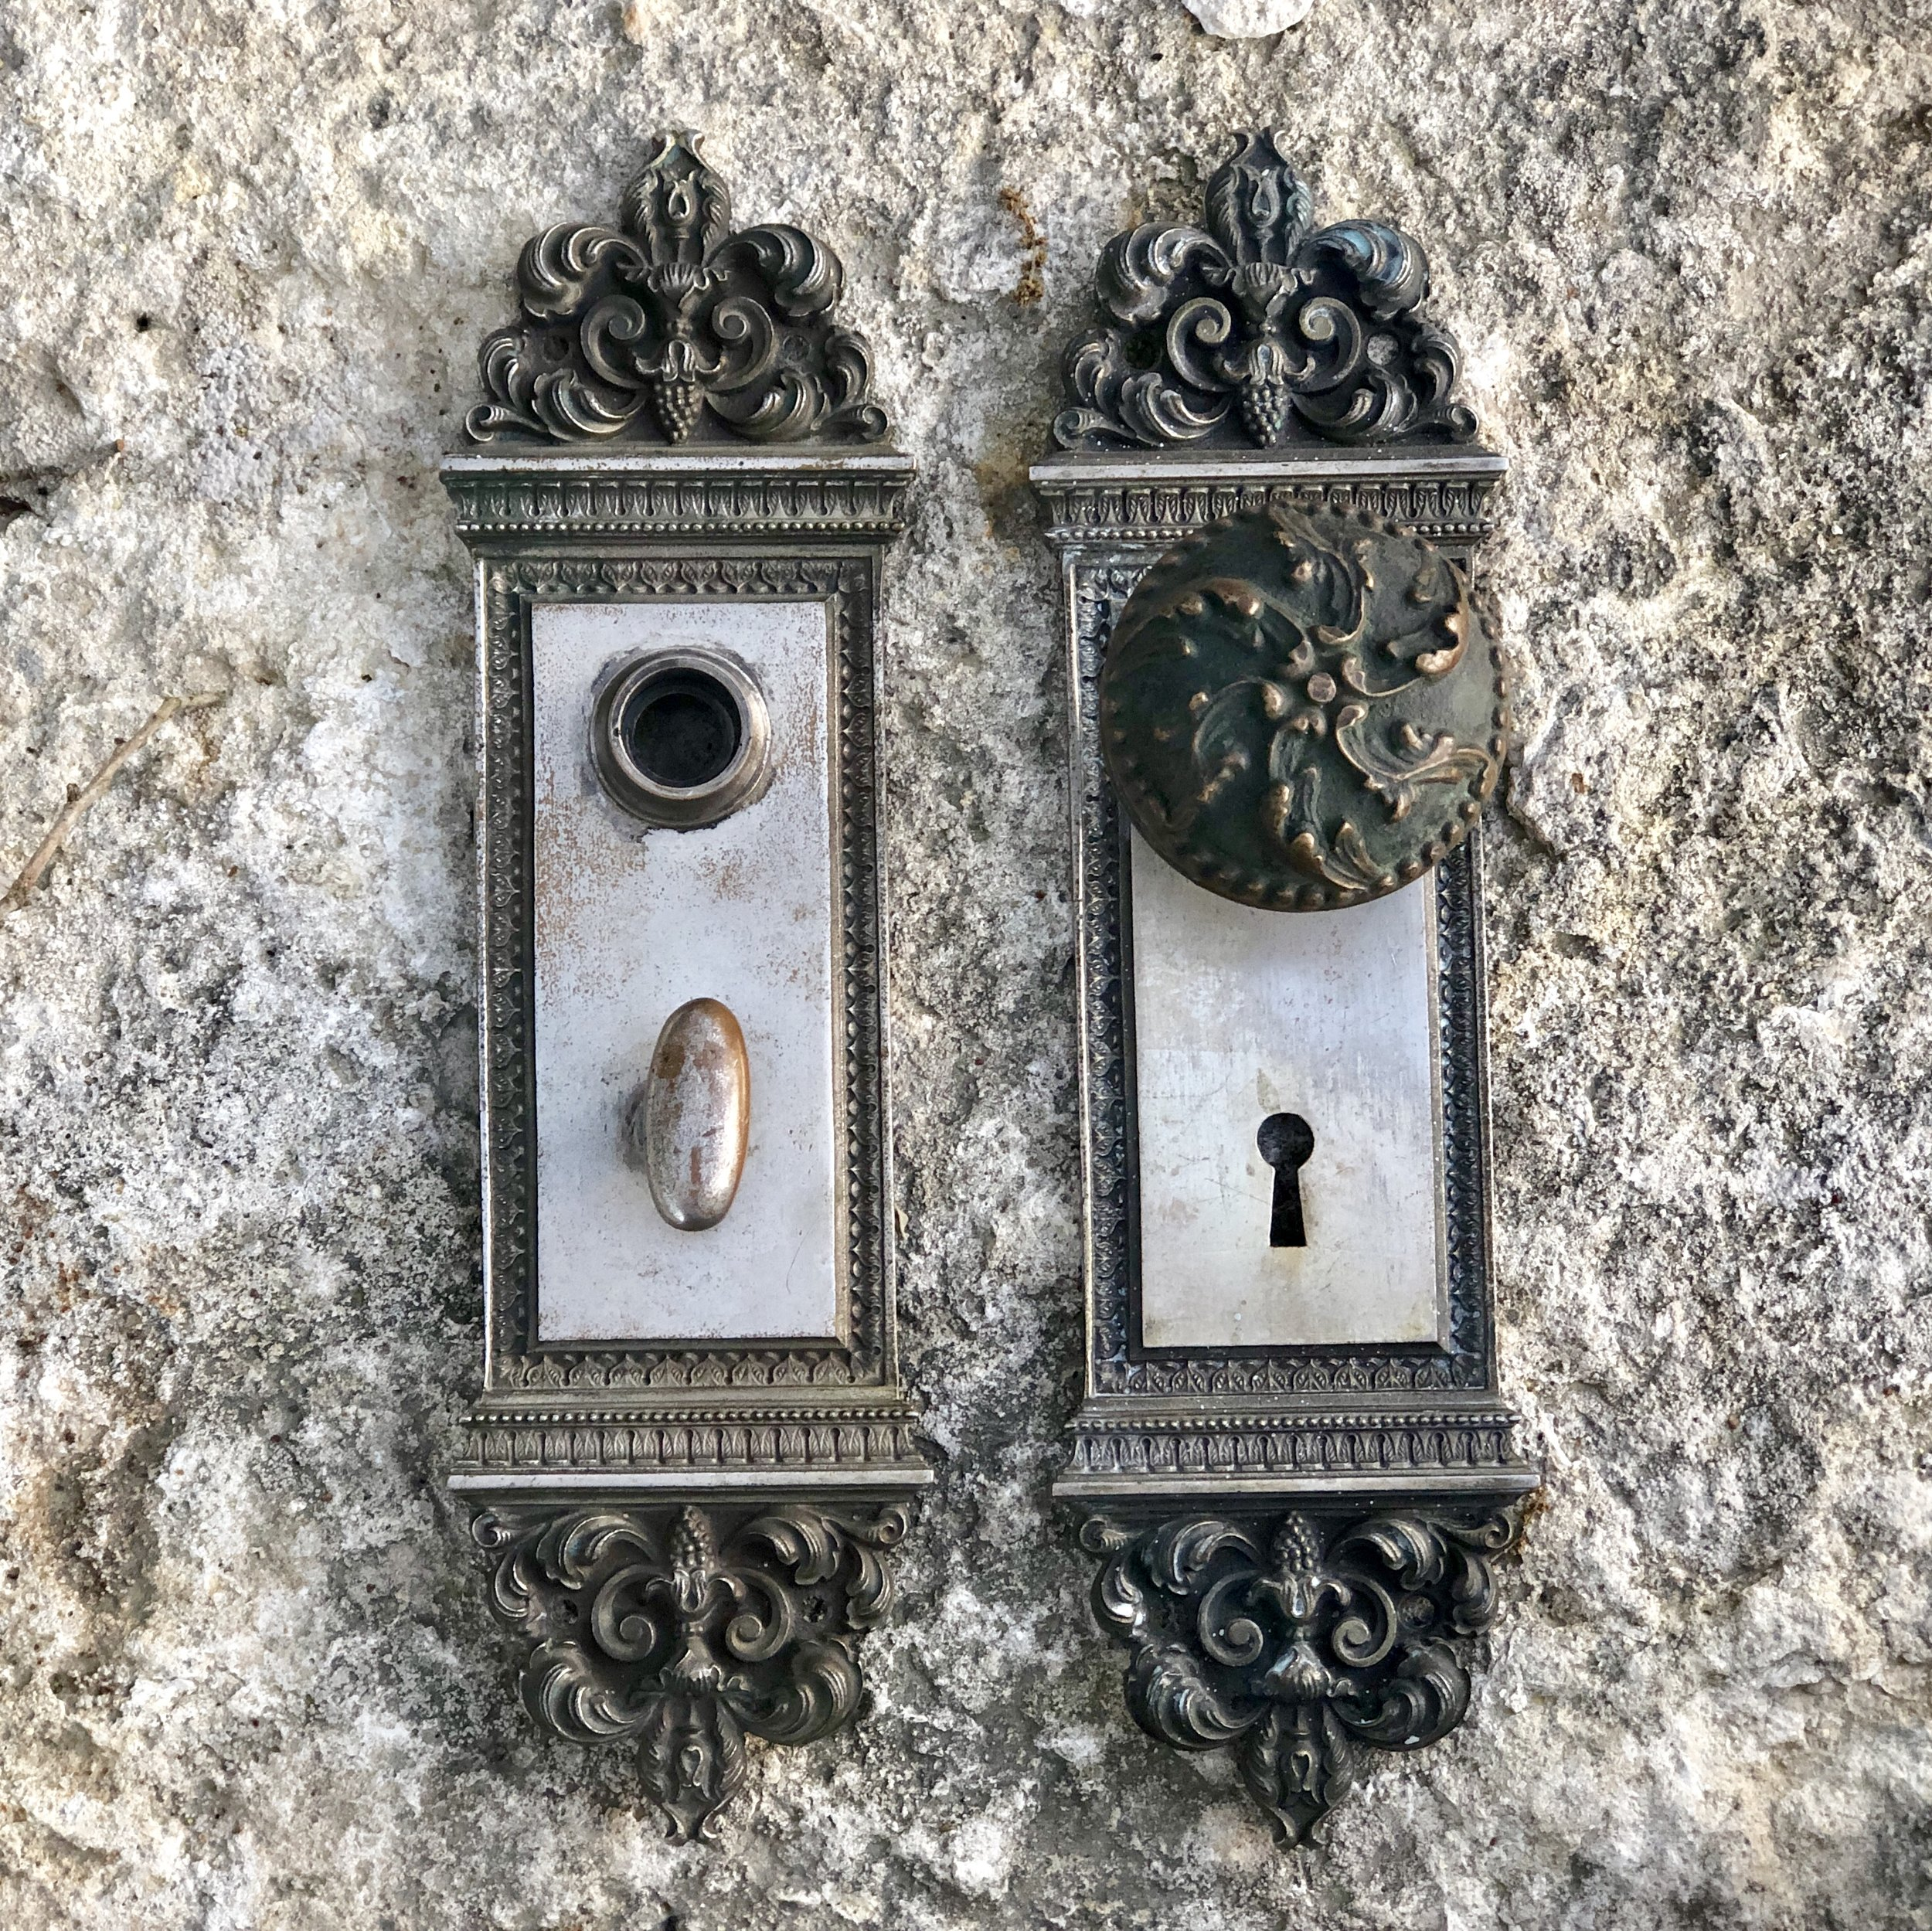 Antique door plates and a knob from the Victorian era.